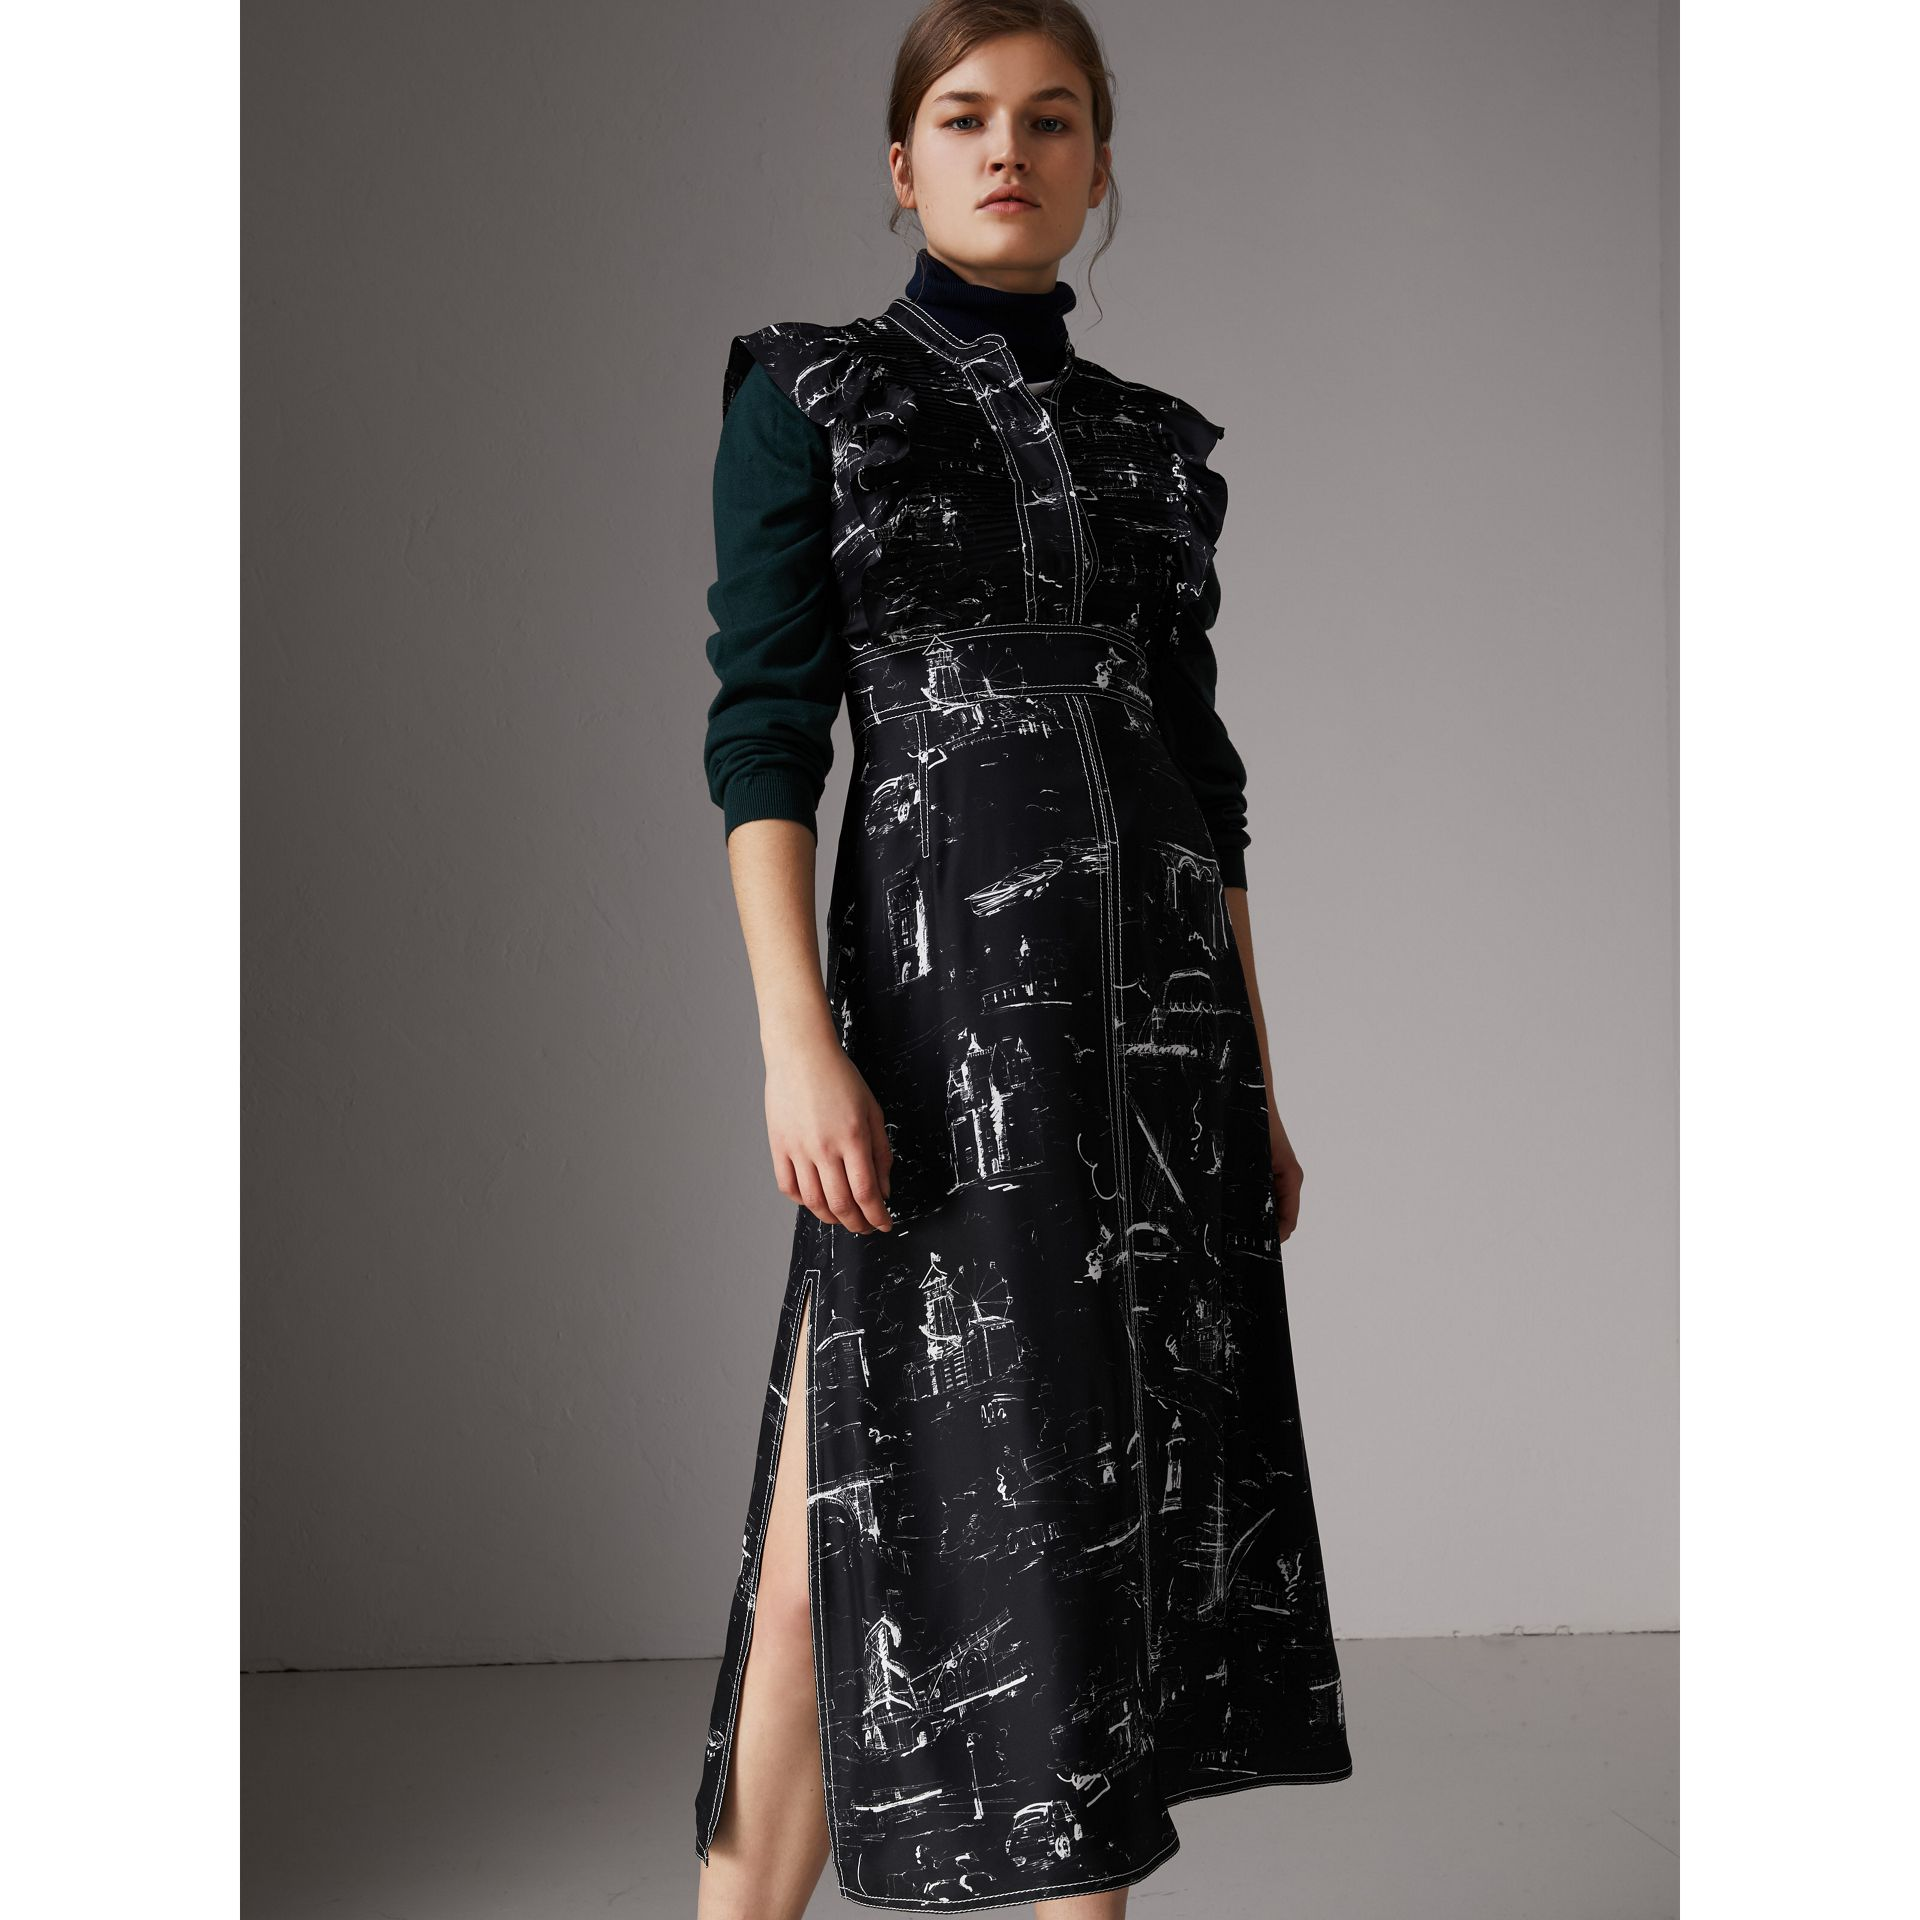 Ruffle Detail Landmark Print Silk Dress in Black - Women | Burberry United States - gallery image 4